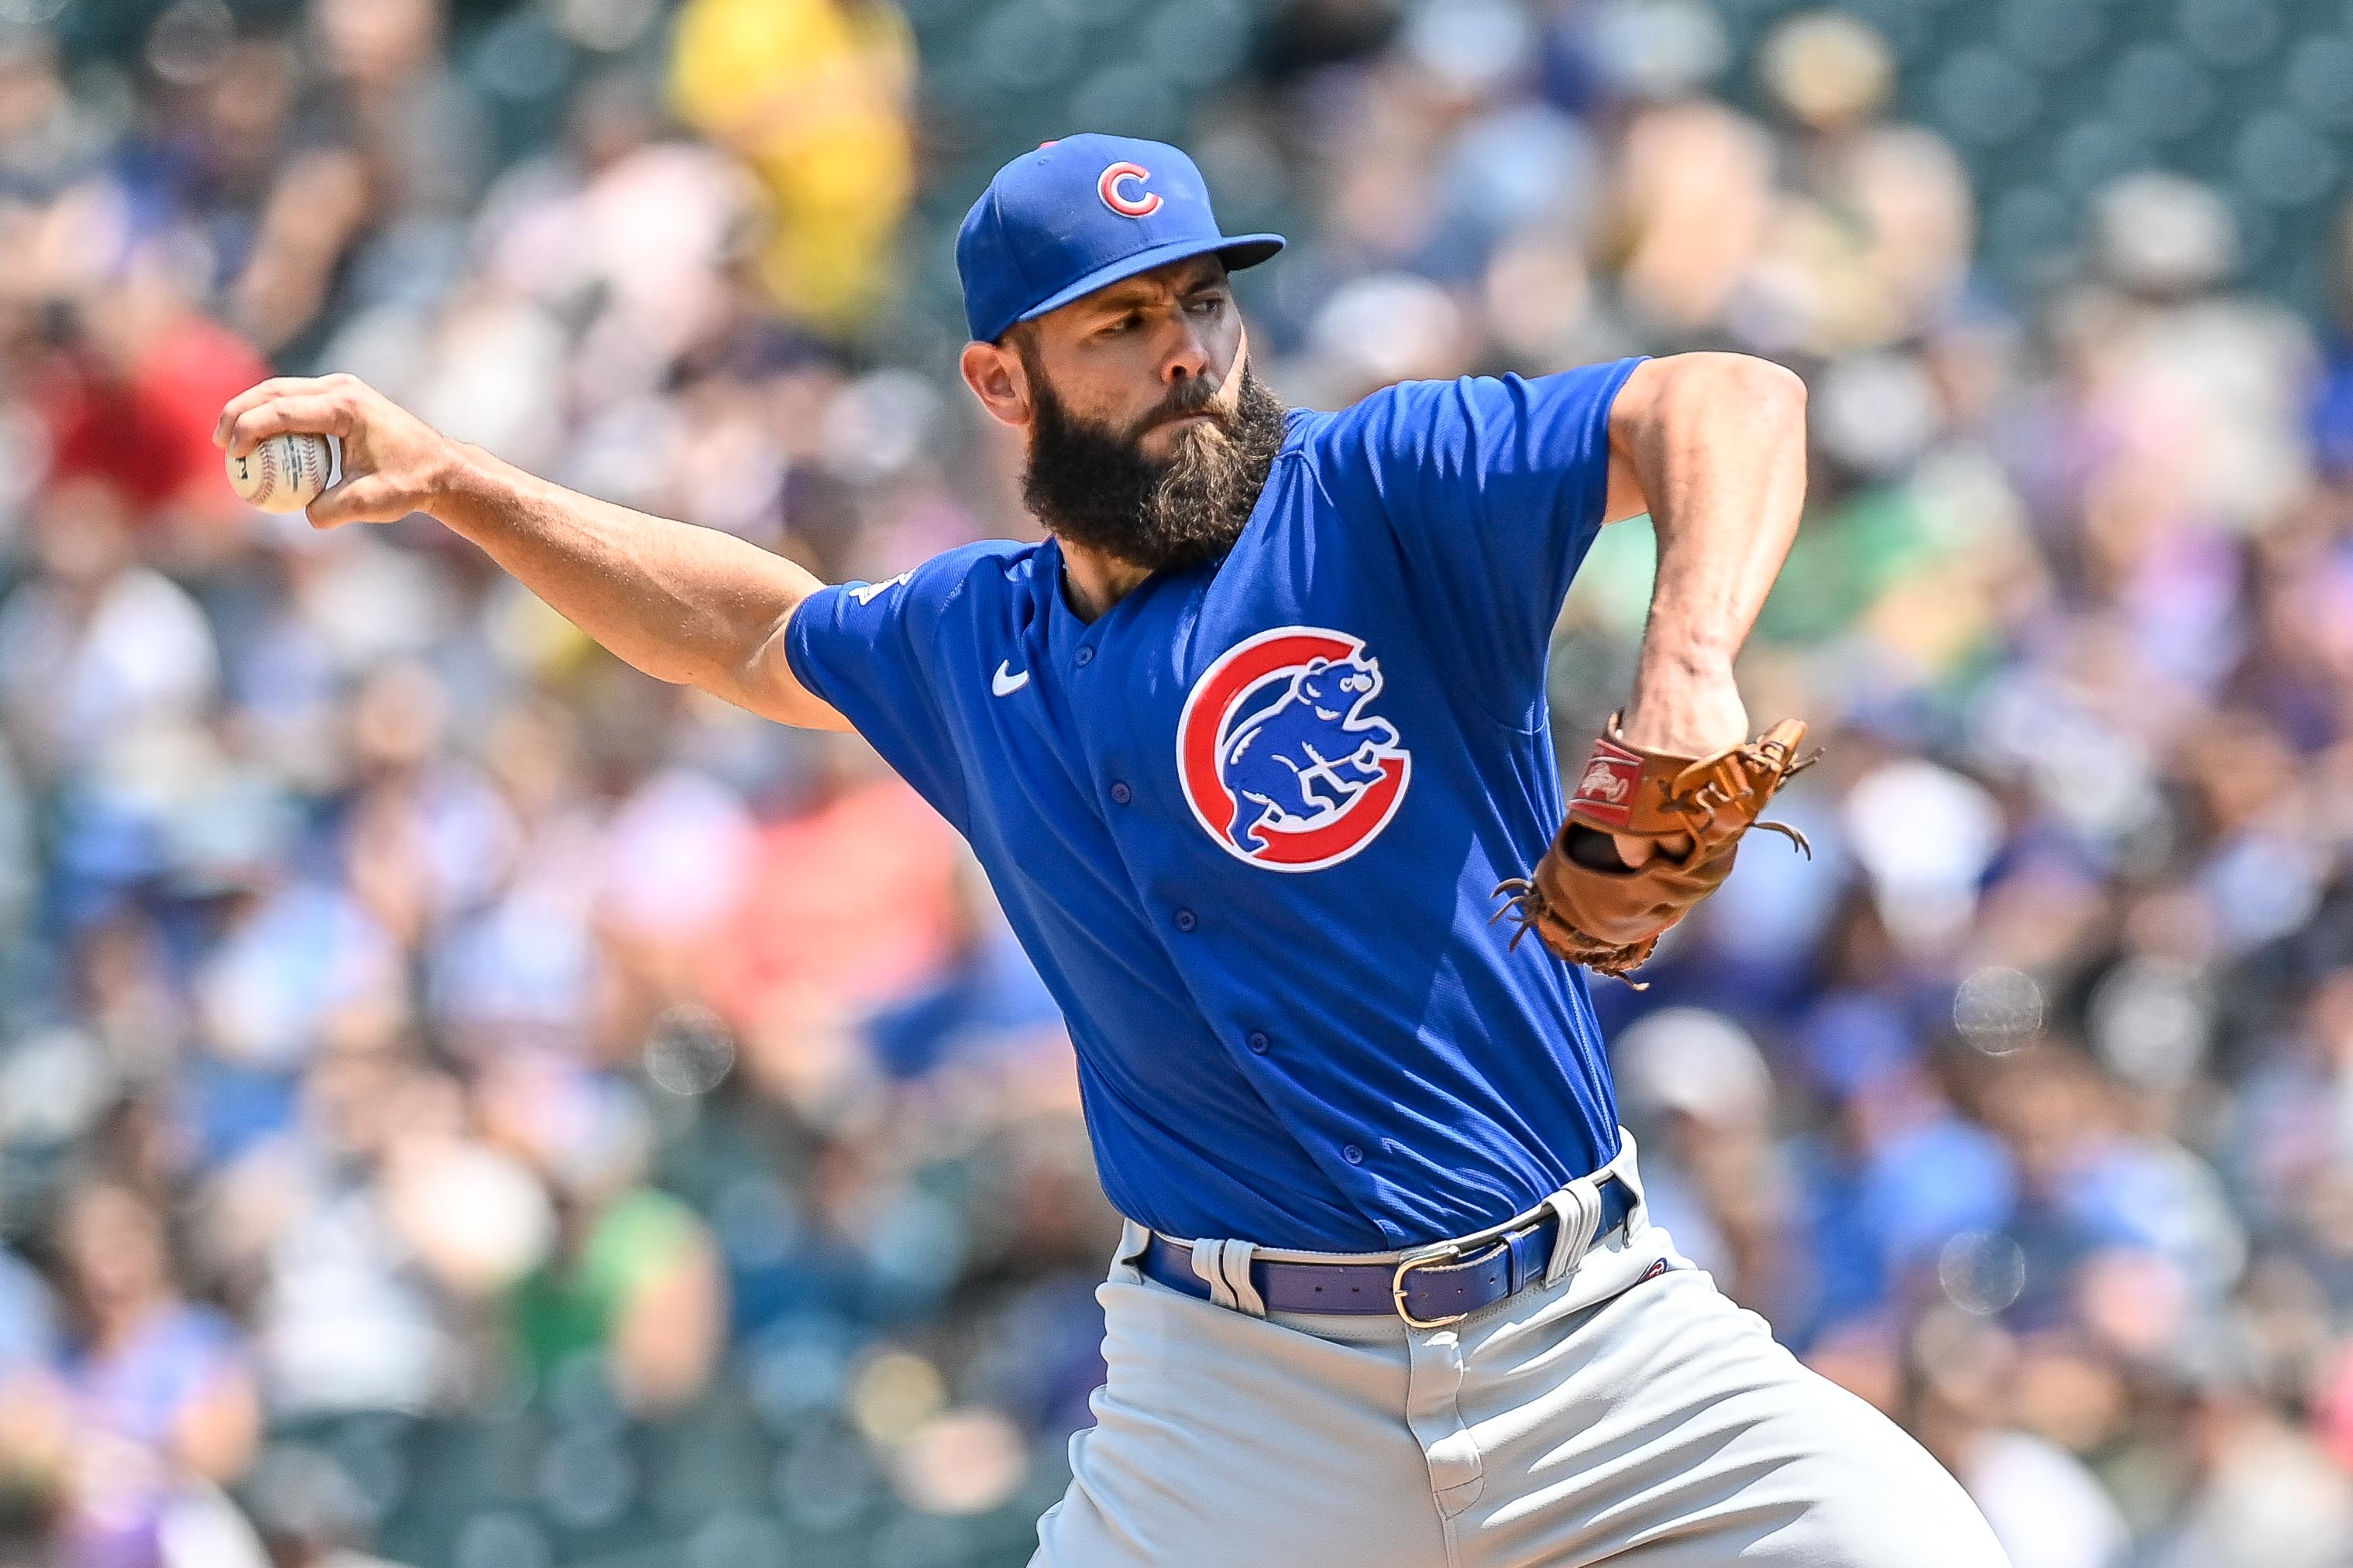 Jake Arrieta Unconditionally Released By Cubs amid Season-Long Struggles